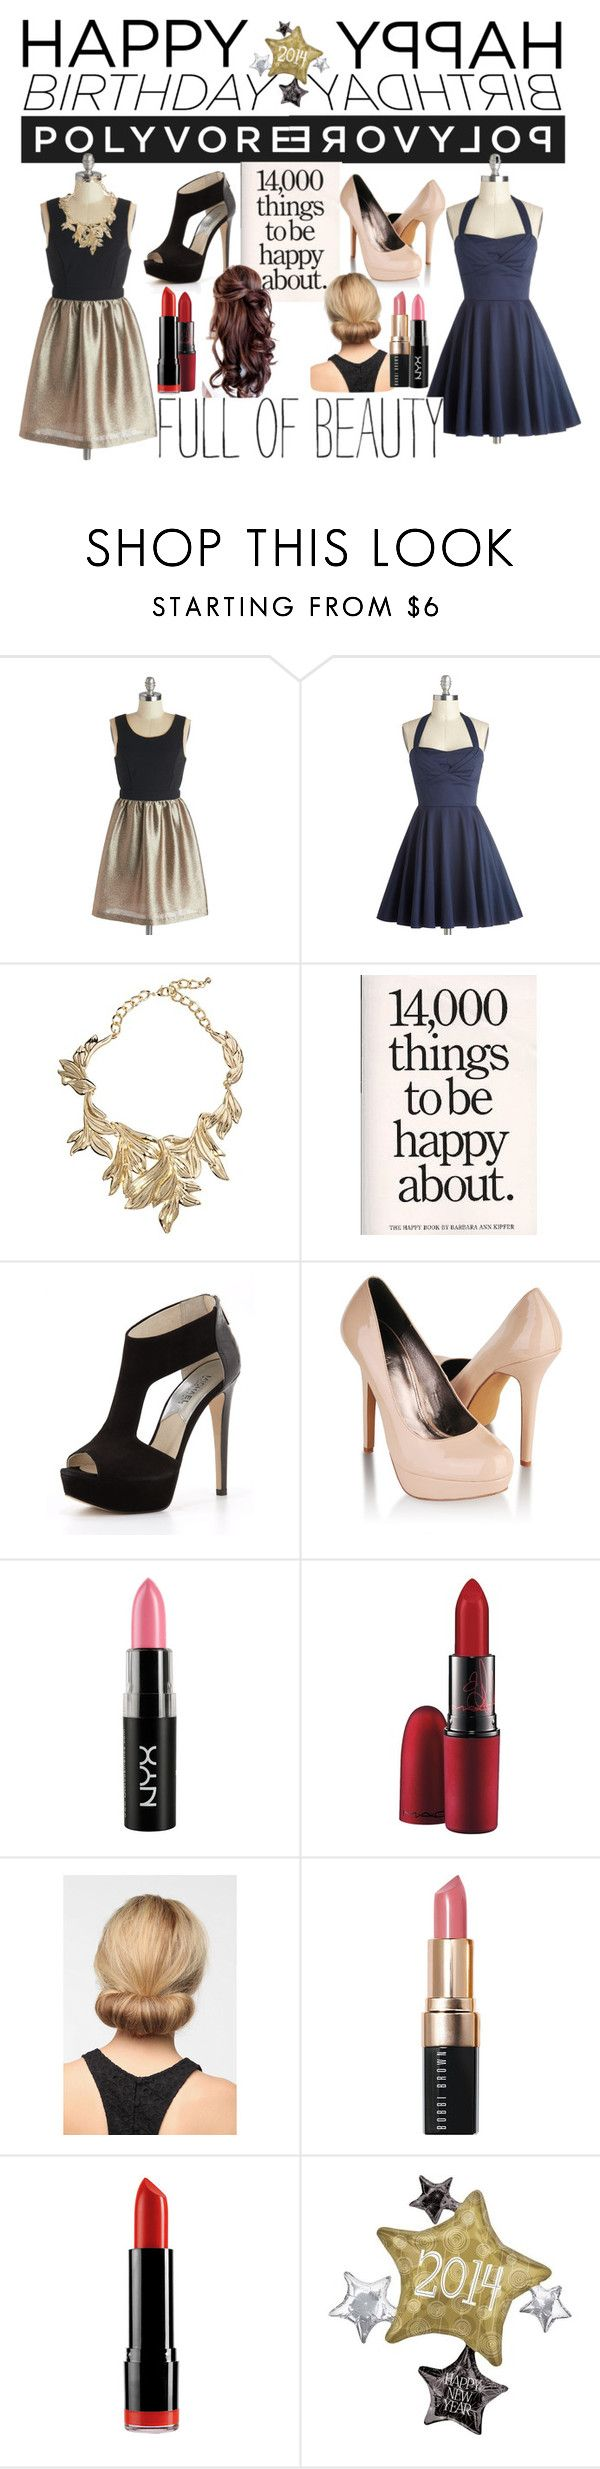 """Birthday Outfits"" by sec71290 ❤ liked on Polyvore featuring ASOS, MICHAEL Michael Kors, Forever 21, NYX, MAC Cosmetics, Bobbi Brown Cosmetics, happybirthdaypolyvore and plus size dresses"